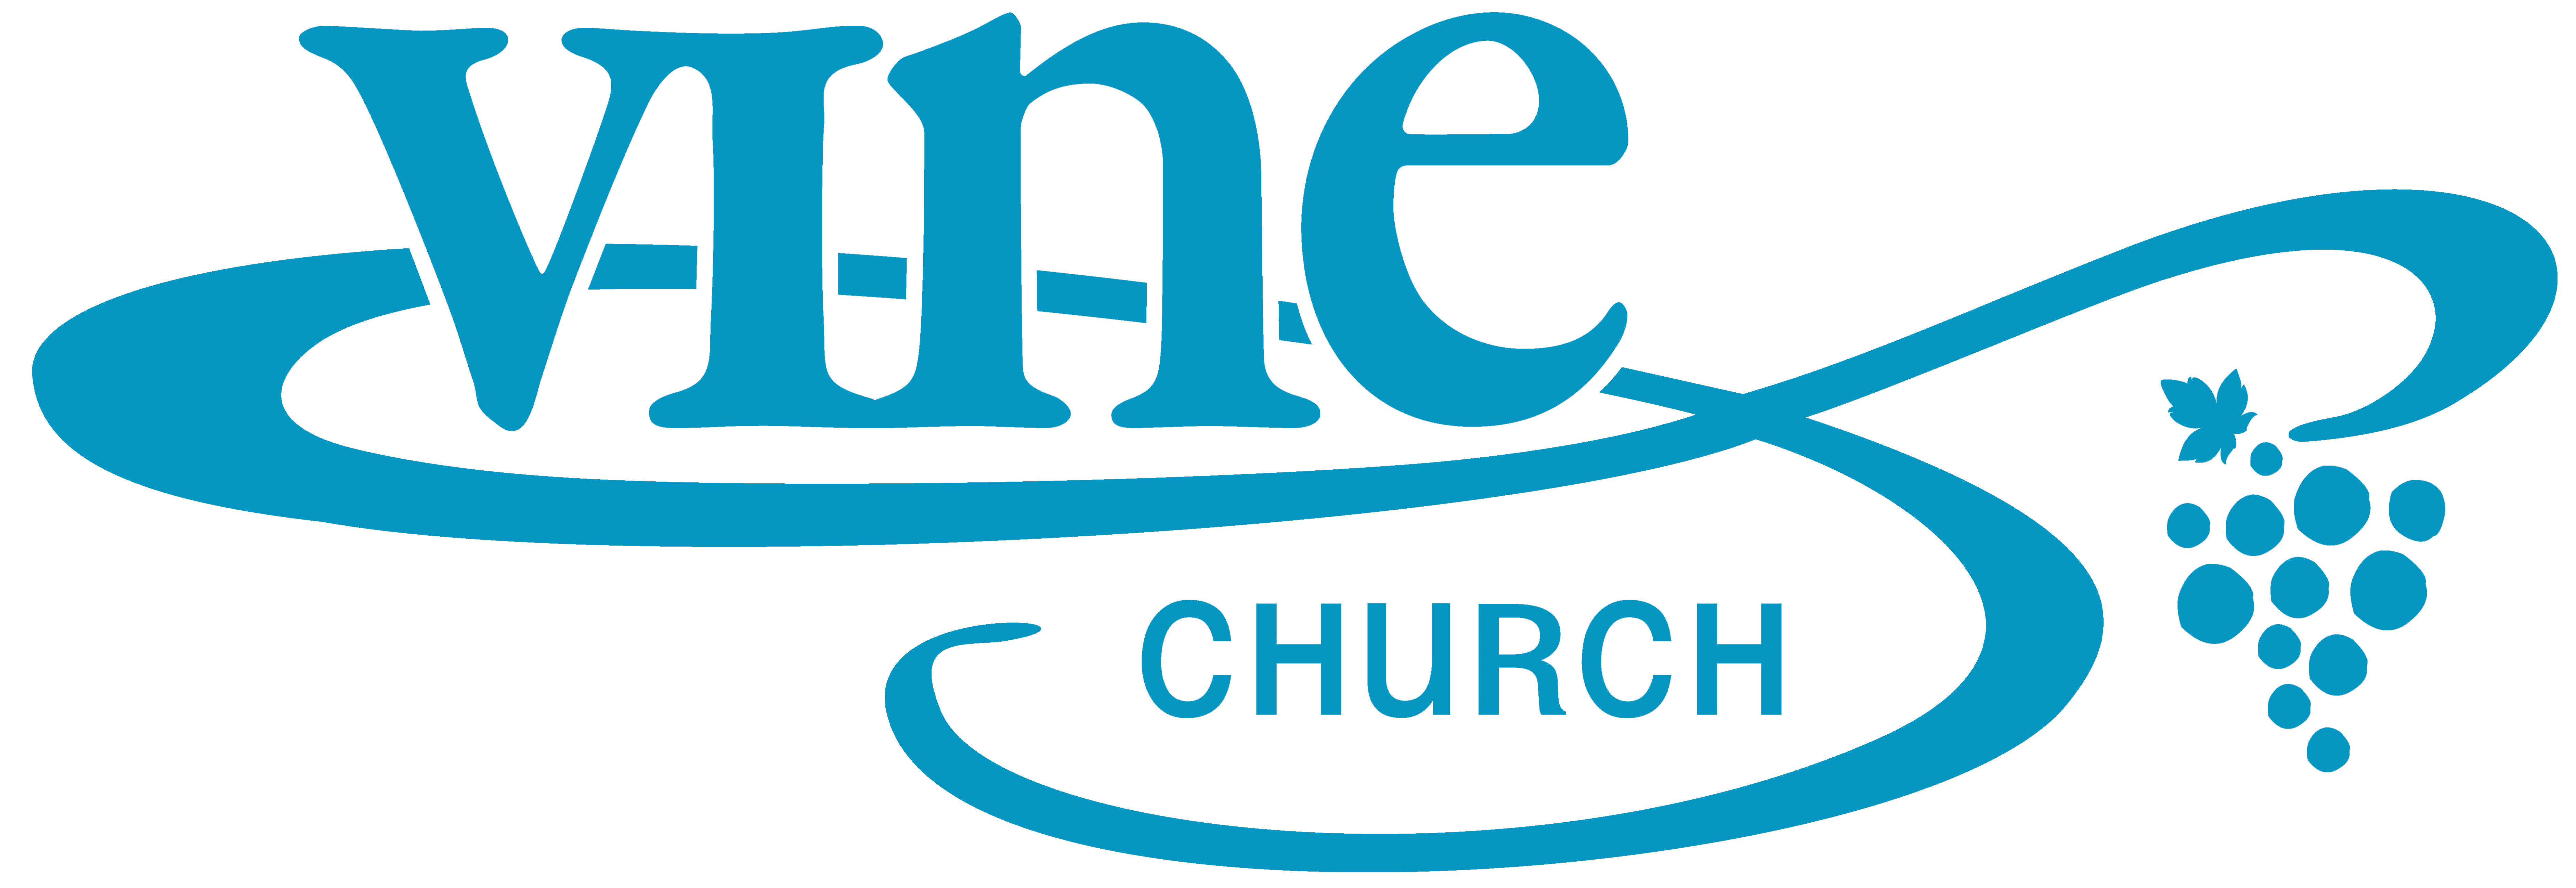 Vine Church | Merrifield Footer Logo